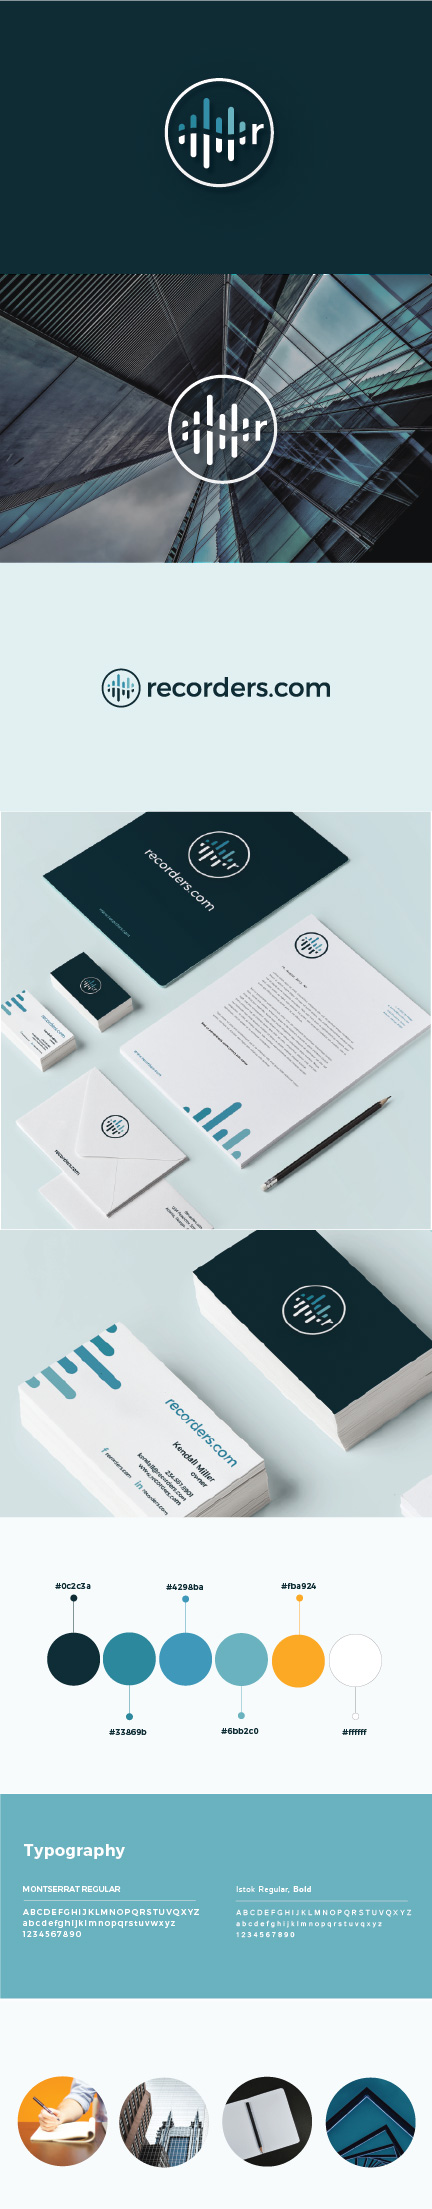 Visual Identity and Brand Board for Recorders.com | Atlanta Graphic Designer